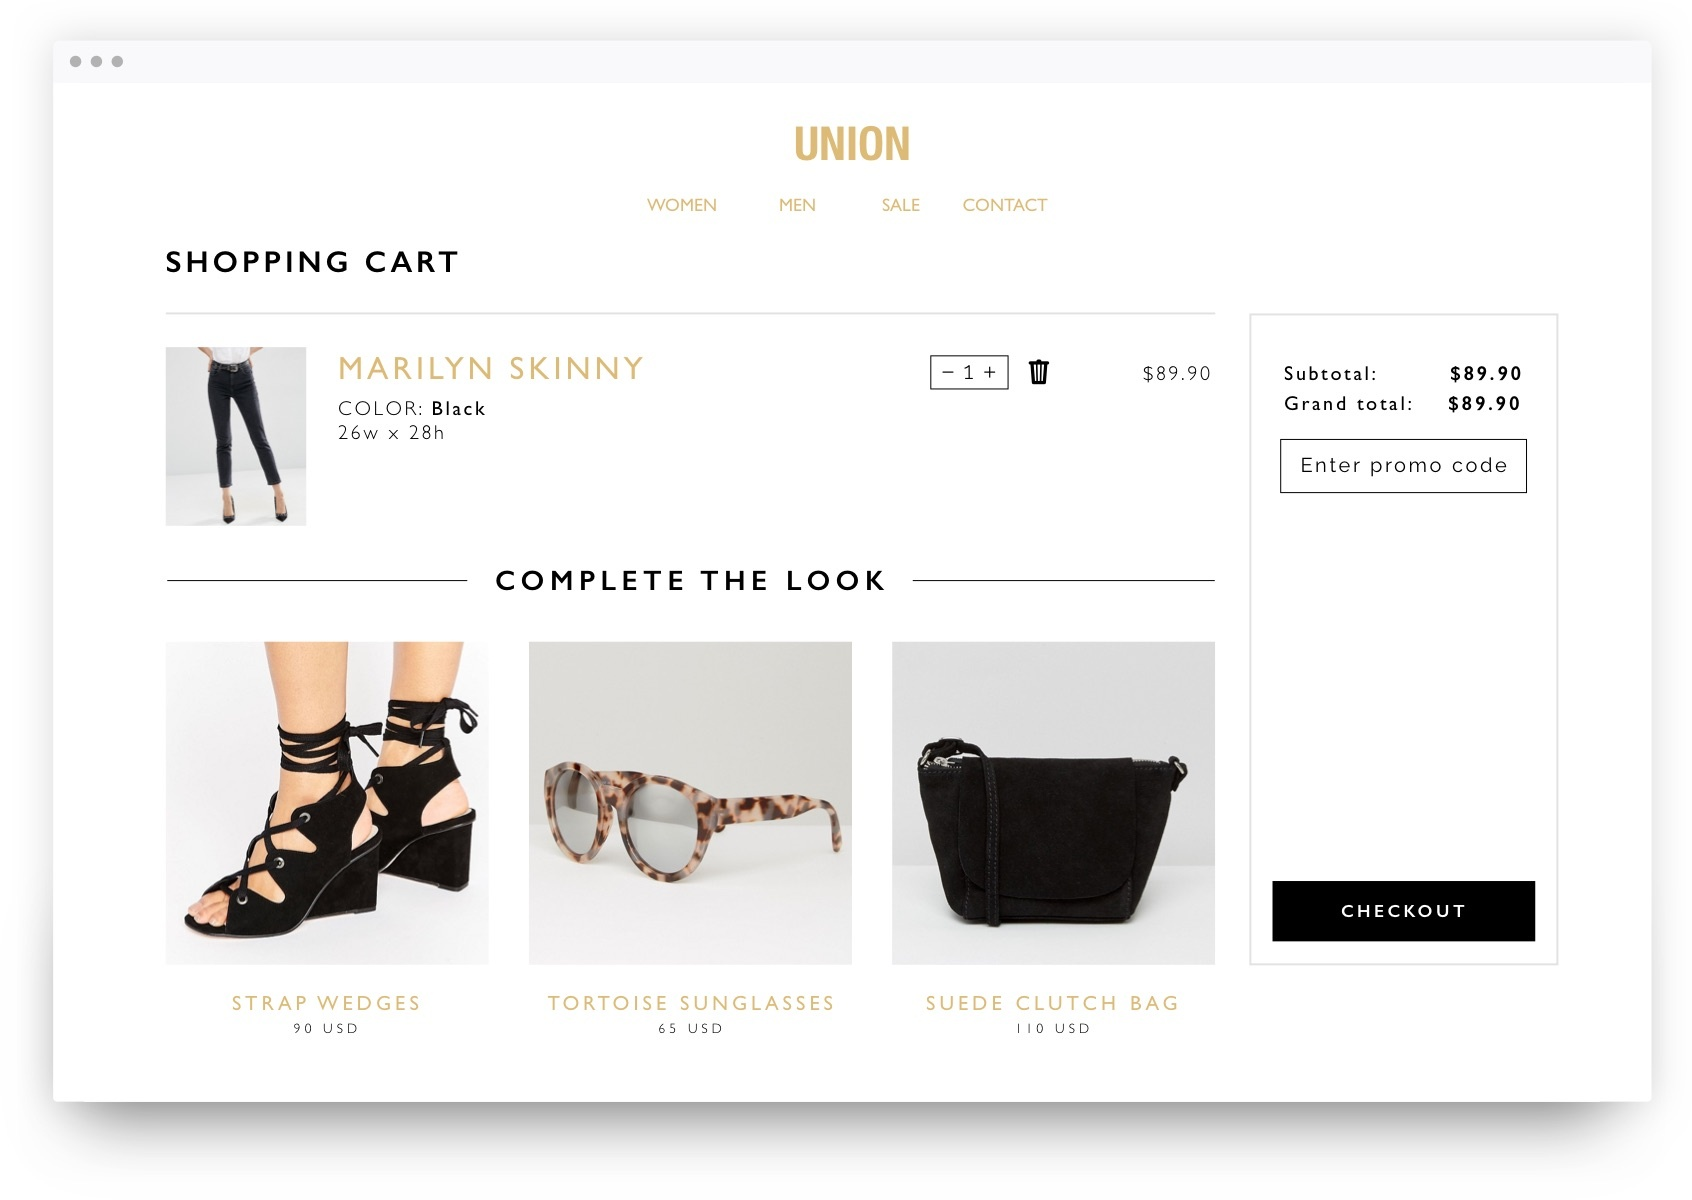 Recommendations - Fashion personalization strategy